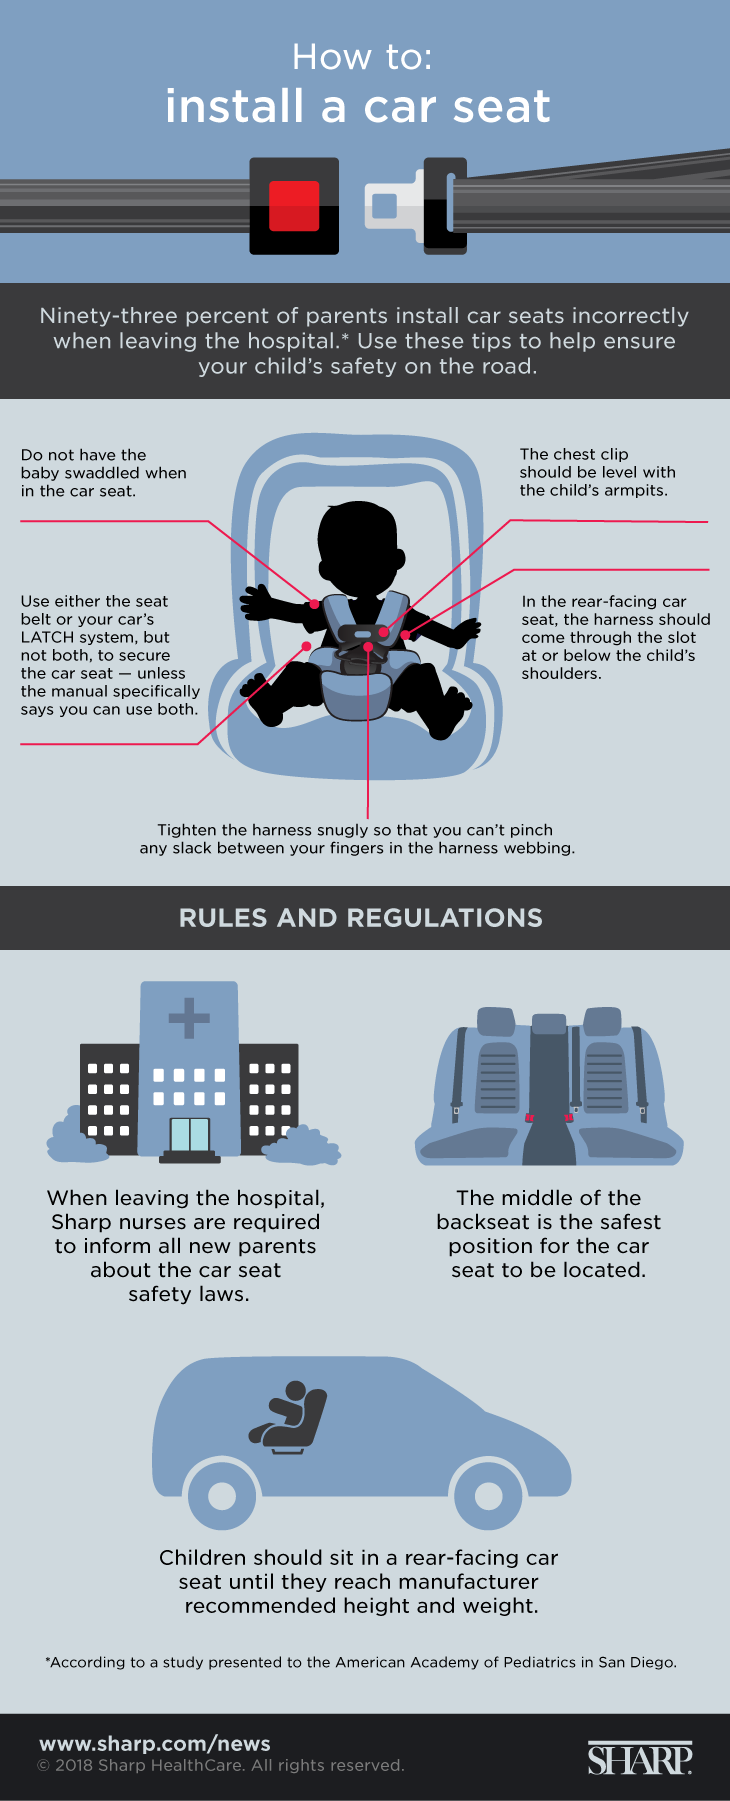 Car seat safety (infographic). How to install a car seat. According to a study presented to the American Academy of Pediatrics in San Diego, 93 percent of parents install car seats incorrectly when leaving the hospital. Sharp nurses are required to inform all new parents of infants about the car seat safety laws. The middle of the backseat is the safest position for the car seat to be located. Children should be kept in rear facing car seats until age two or until they have reached height and weight maximums set by the car seat manufacture. Use these car seat installation tips to help ensure your child's safety on the road: 1. Do not have the baby swaddled when in the car seat. 2. The chest clip should be level with the child's armpits. 3. Use either the seatbelt or your car's LATCH system, but not both, to secure the car seat – unless the manual specifically says you can use both. 4. In the rear facing car seat, the harness should not come through the slot at or below the child's shoulders. 5. Tighten the harness snuggly so that you can't pinch any slack between your fingers in the harness webbing.